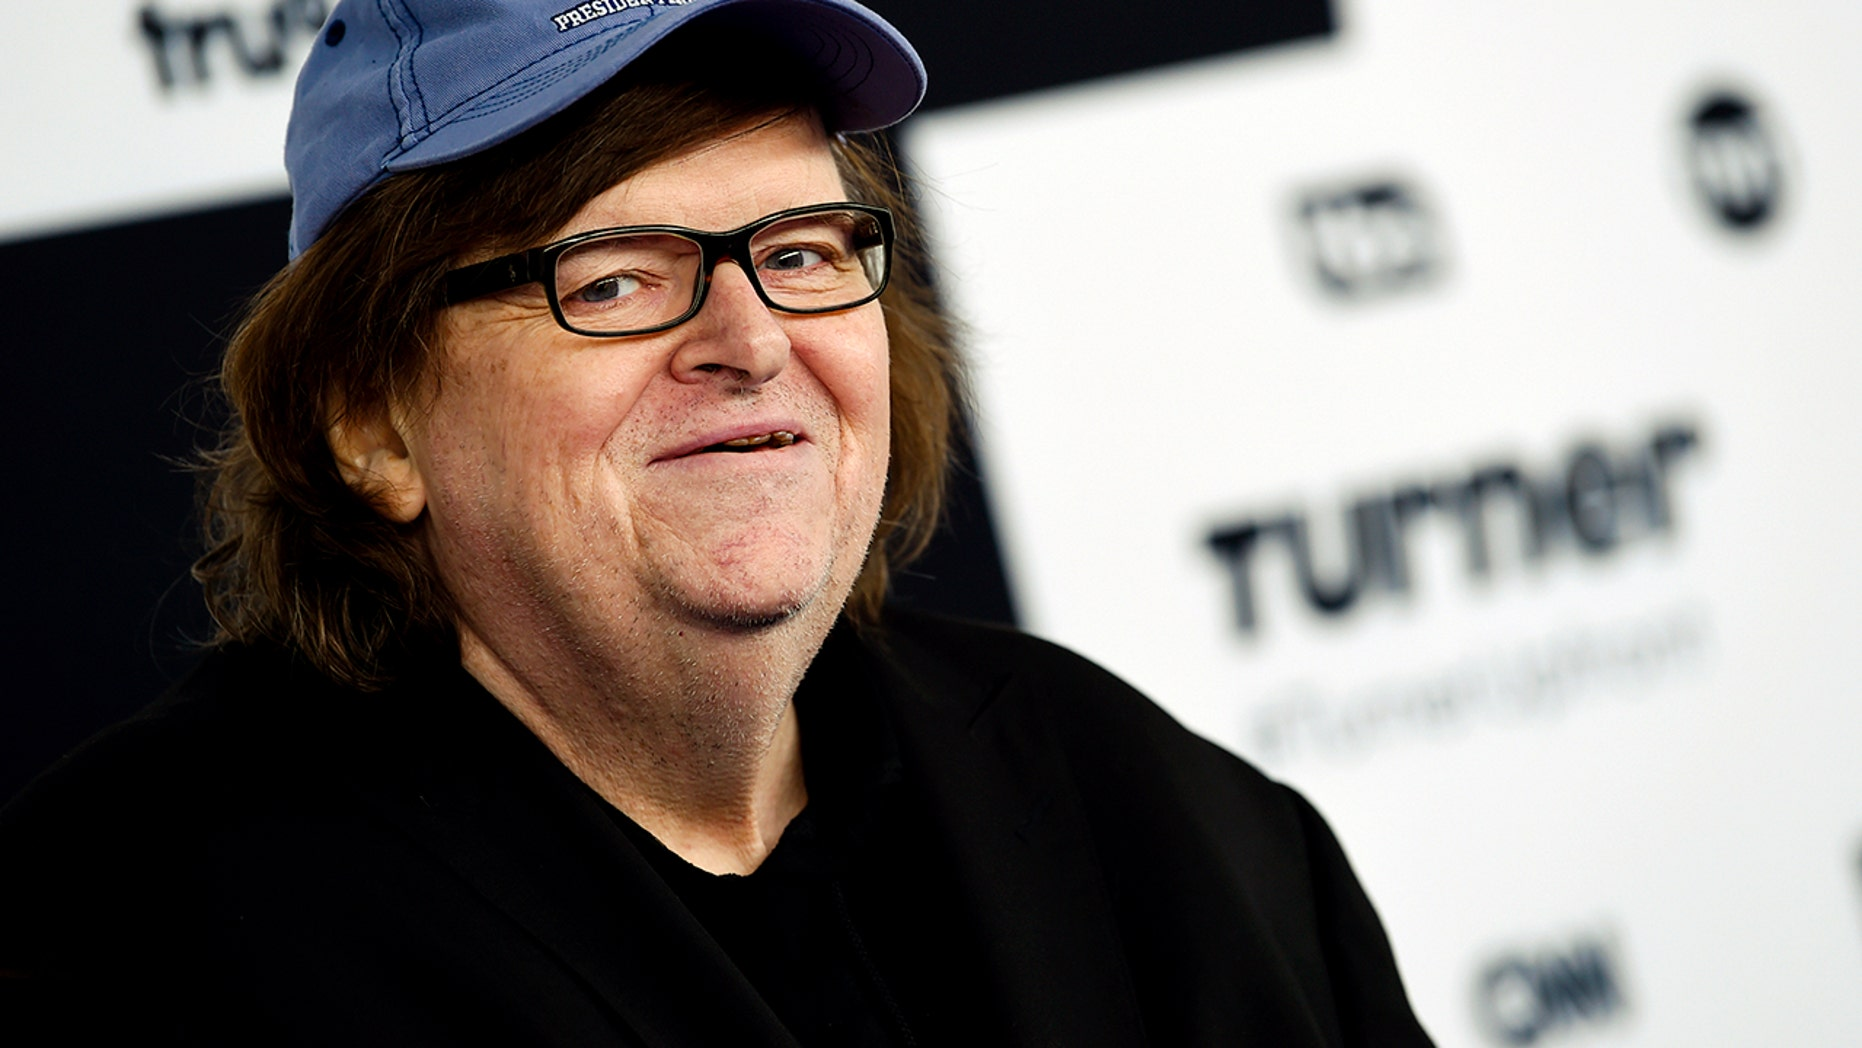 """Michael Moore expressed his frustration at the New York premiere for """"Flint,"""" a Lifetime movie about the water crisis. He says the problem with Flint's water supply could be fixed with new pipes but that hasn't been completed yet and he believes if the former auto town was in a more upscale area like Westchester, New York, the problem would be solved by now."""